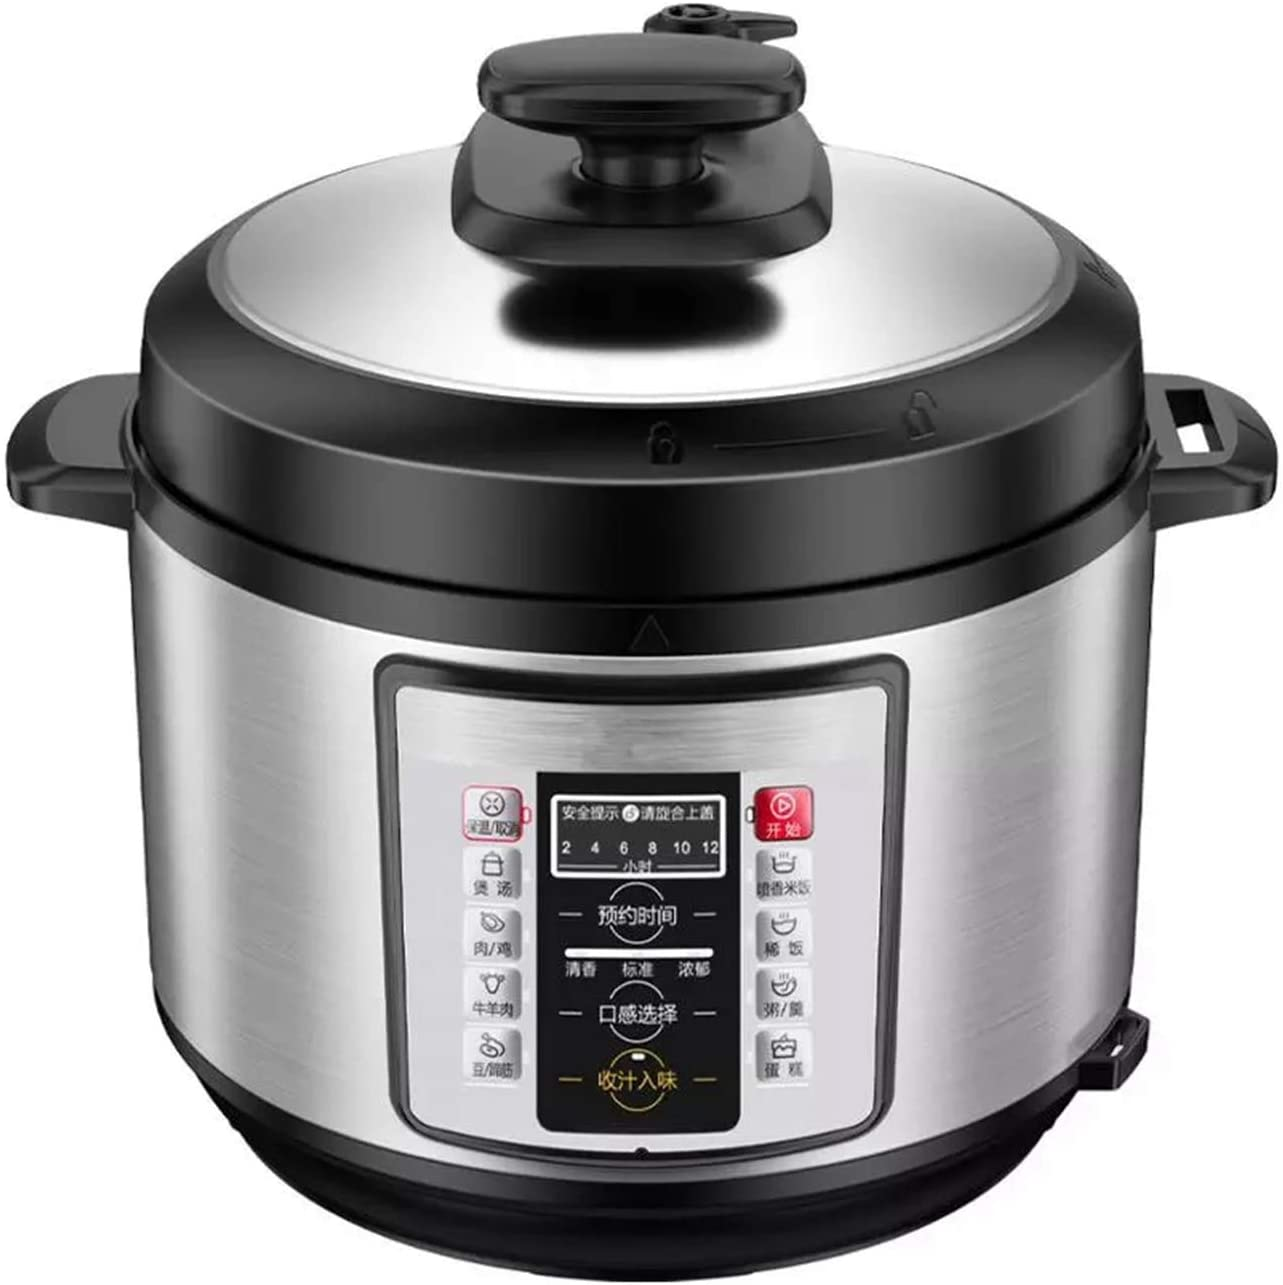 8-in-1 Electric Pressure Cooker Instant Stainless Steel Pot, Slow Cooker, Steamer, Saute, Warmer, Rice Cooker, 5L